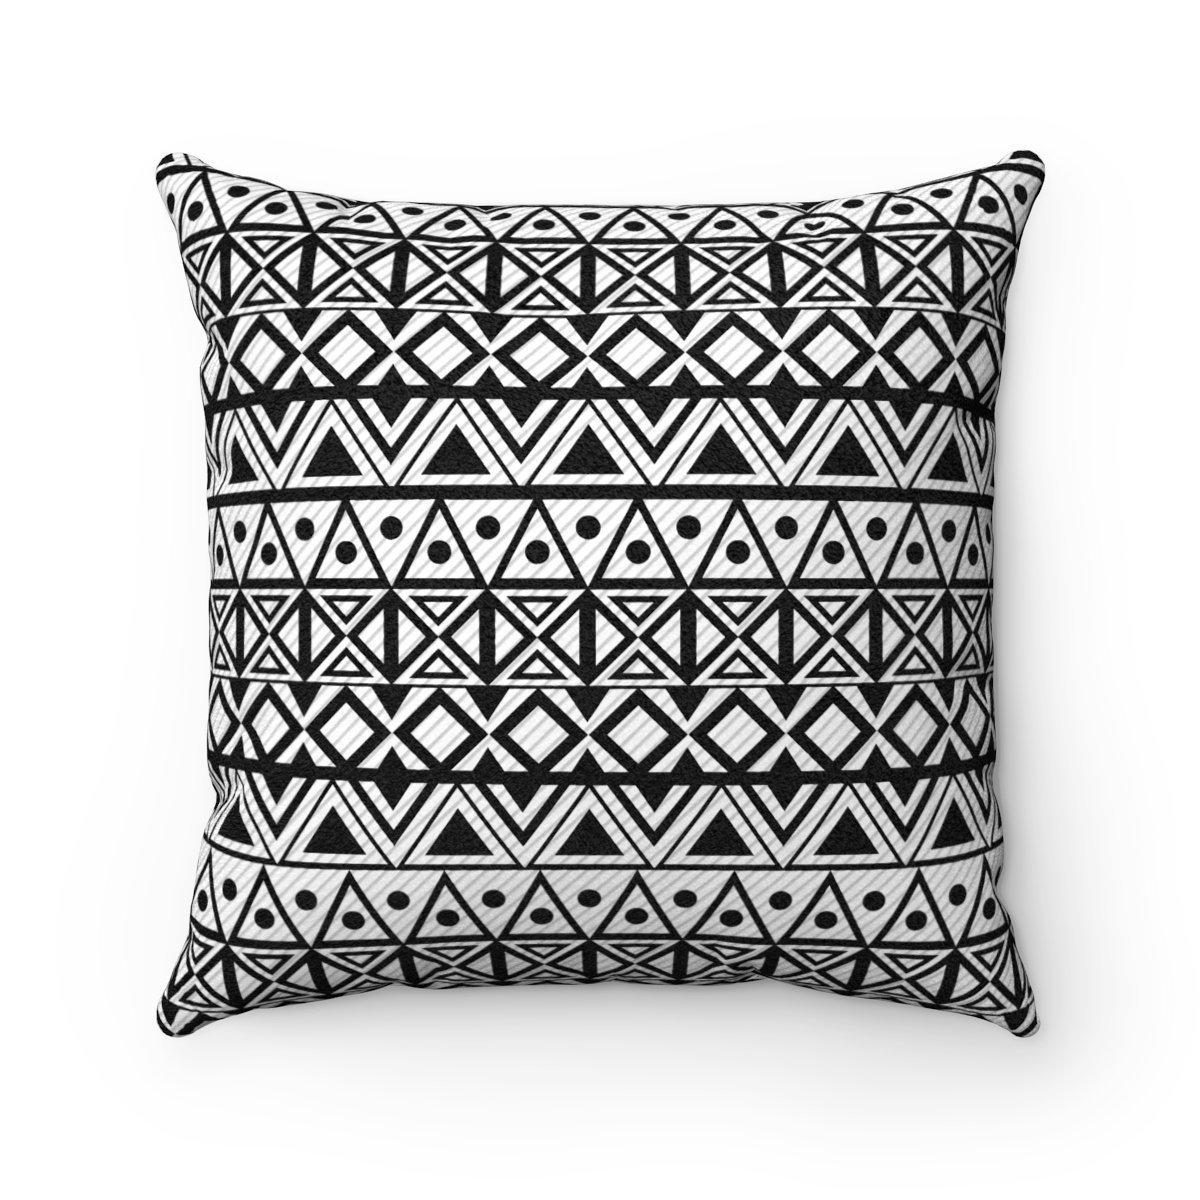 Black and white ethnic animal-friendly microfiber decorative pillow w/insert-Home Decor - Decorative Accents - Pillows & Throws - Decorative Pillows-Maison d'Elite-Très Elite